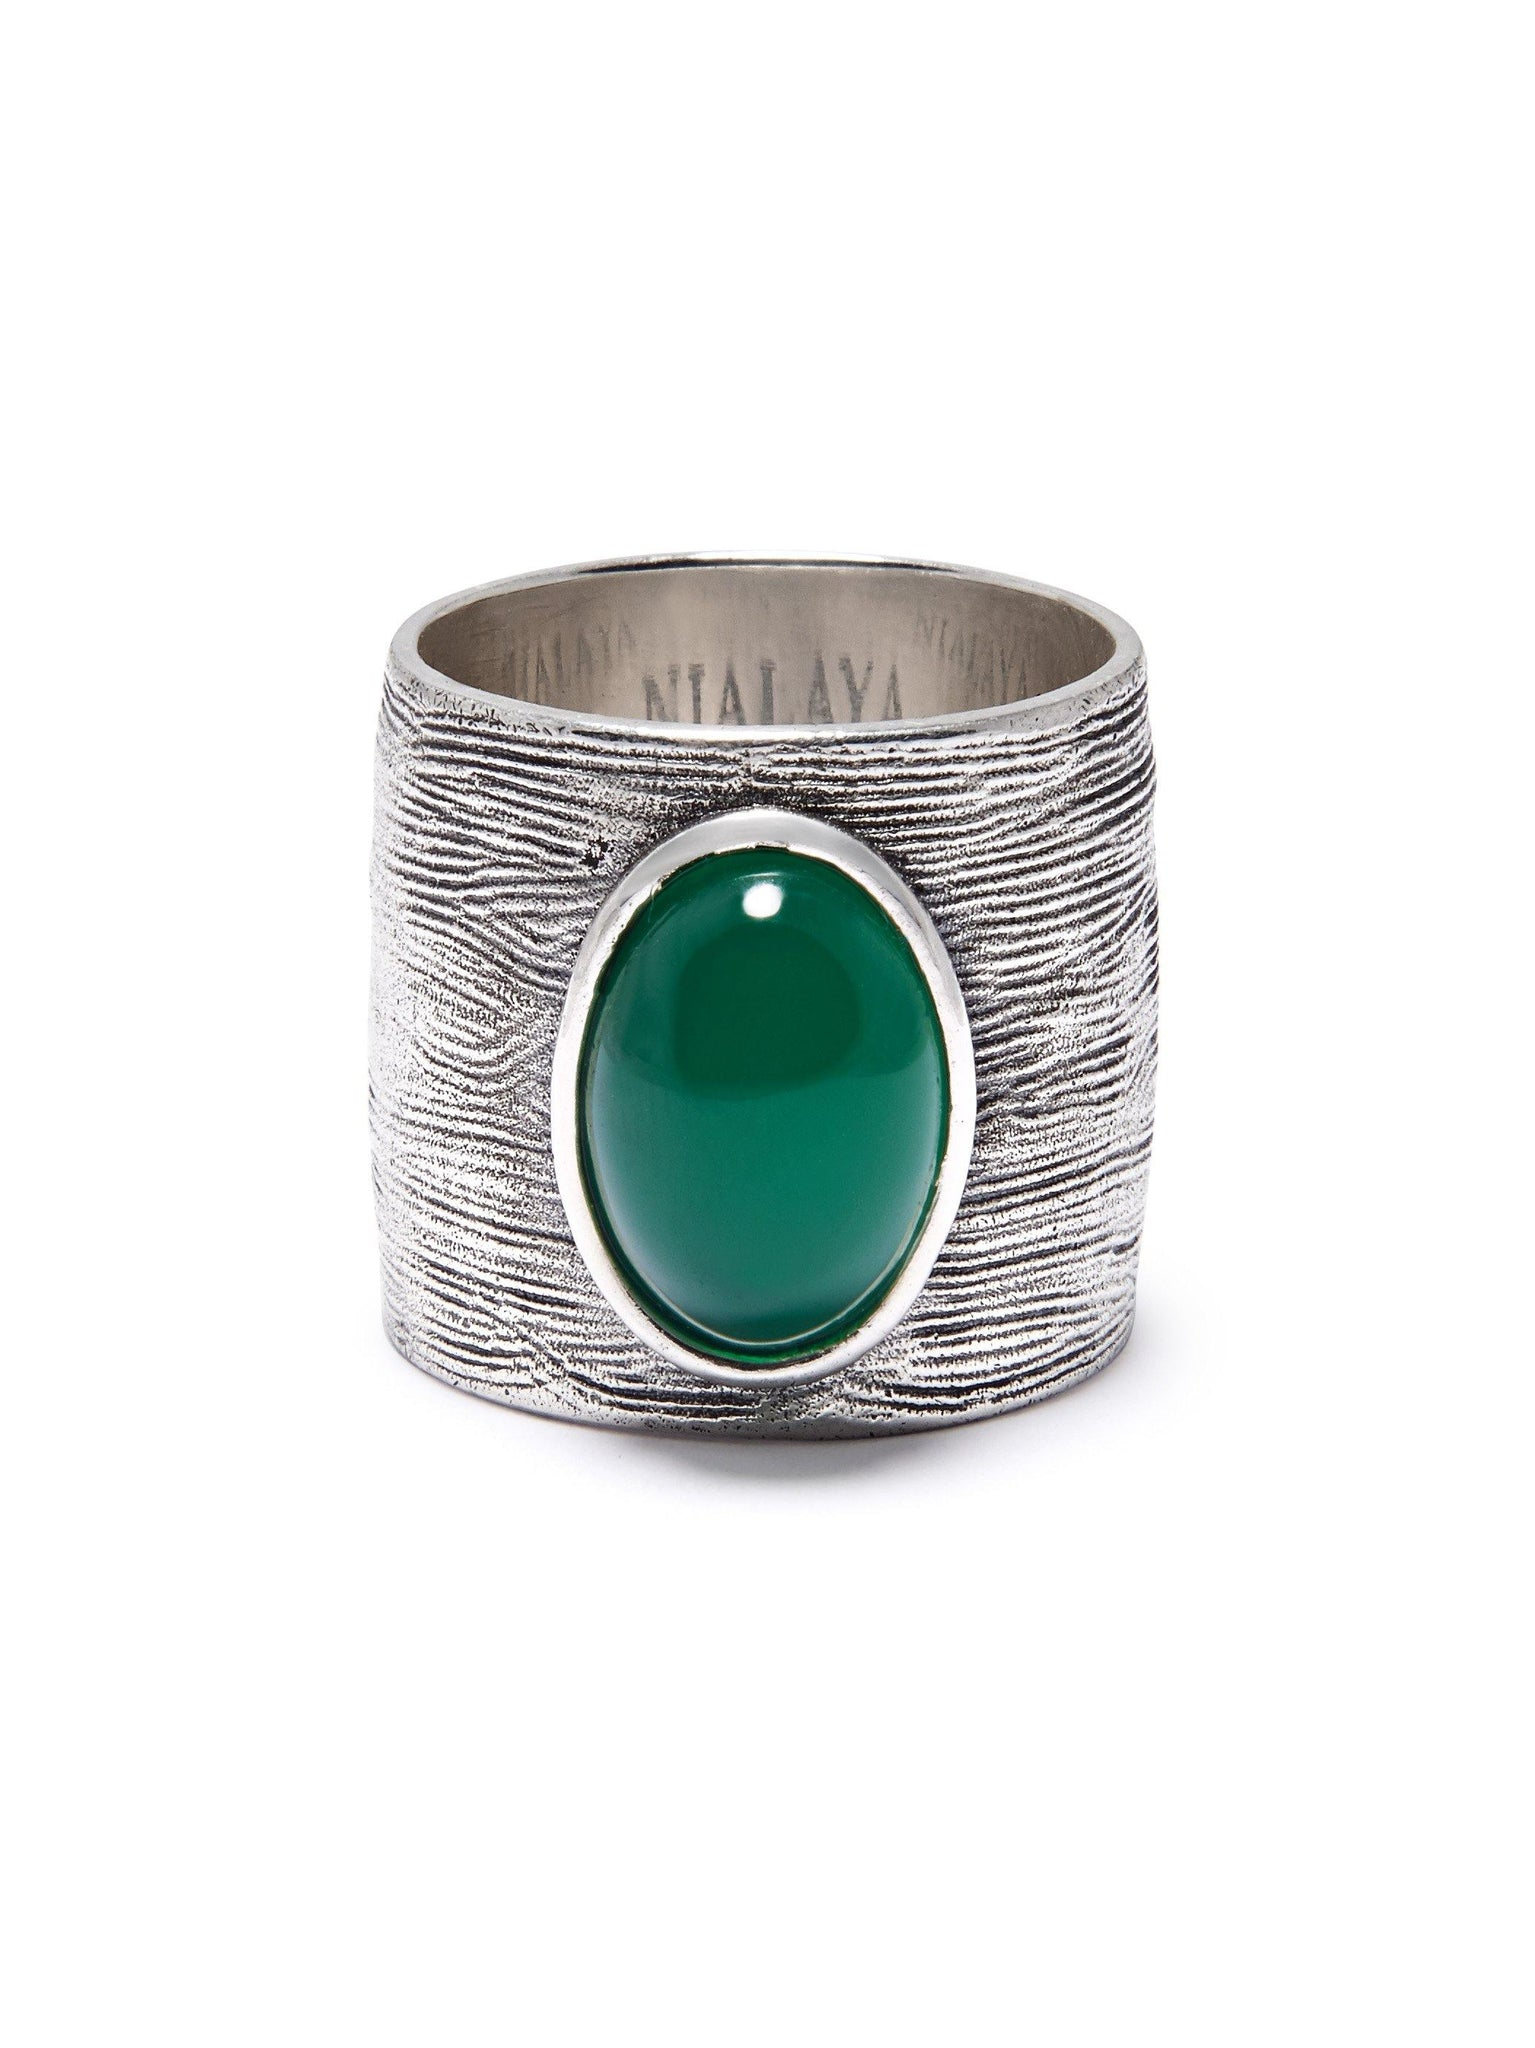 NIALAYA X JOHNNY EDLIND: Men's Carved Sterling Silver Ring with Green Stone - Nialaya Jewelry